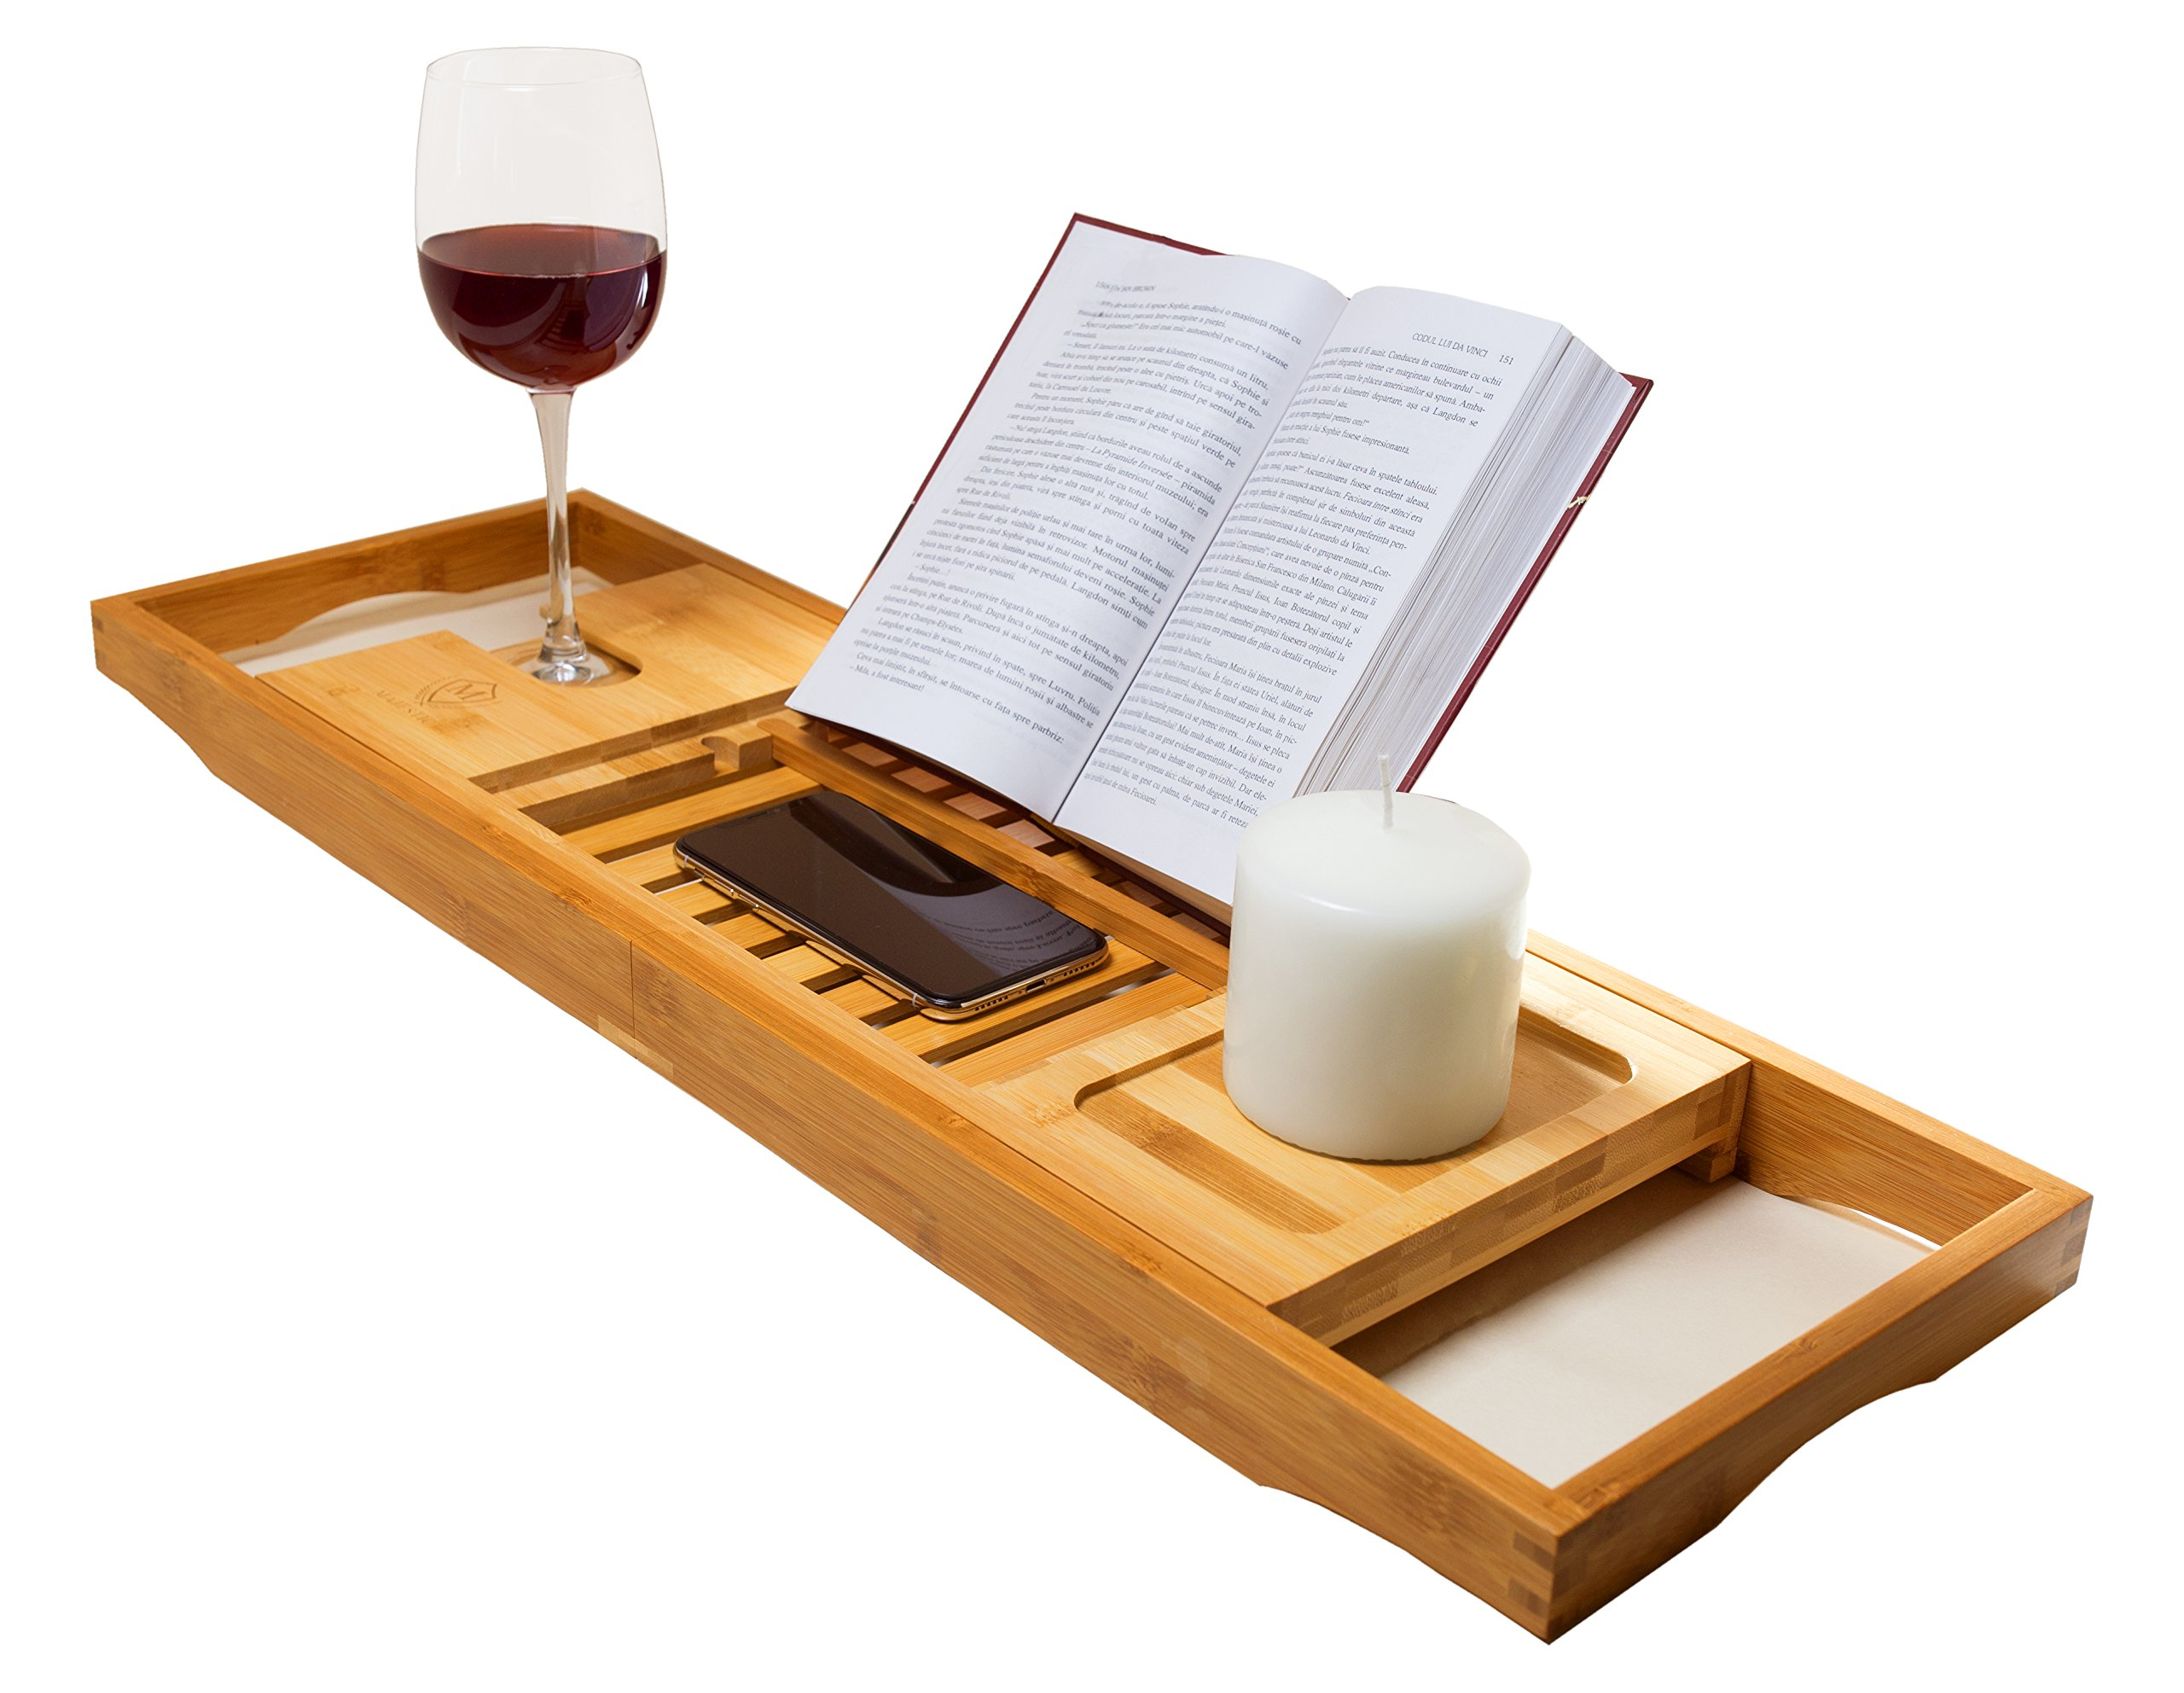 Majestic Bamboo Bathtub Caddy Tray, Reading Rack, Tablet Holder, Cellphone Tray, Wine Glass Holder, Luxury Spa Organizer with Extending Sides